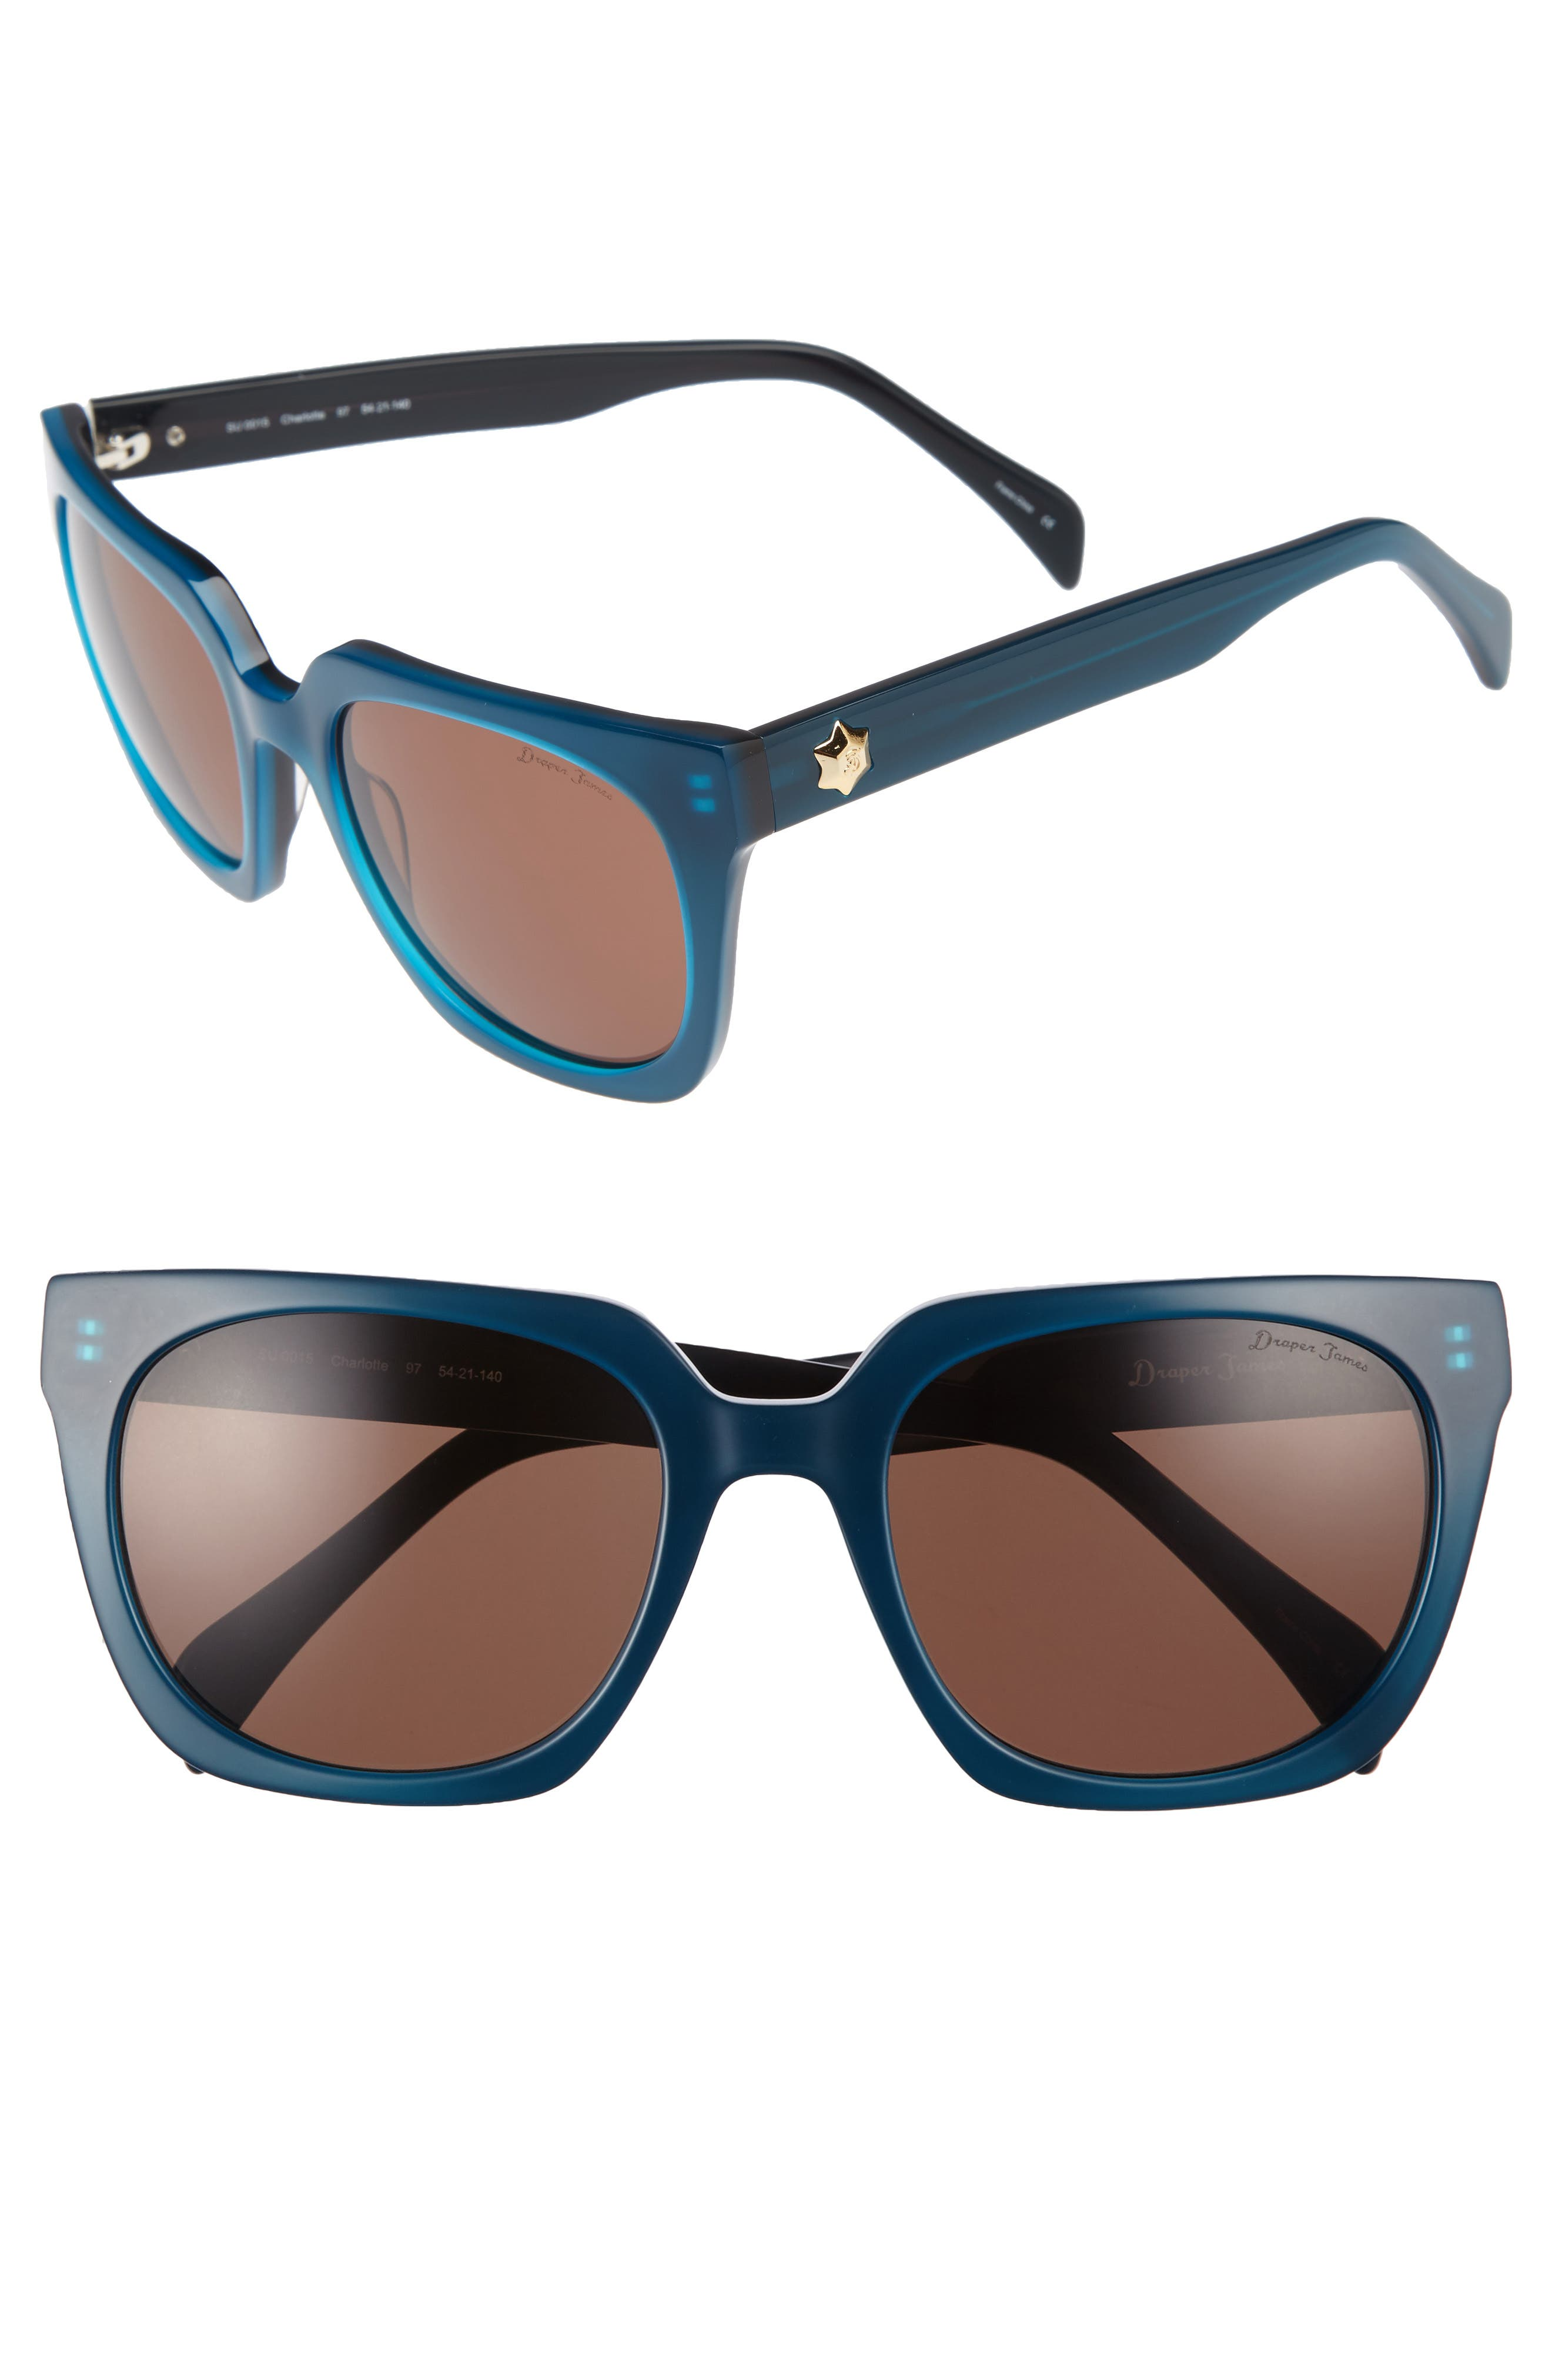 54mm Square Sunglasses,                             Main thumbnail 1, color,                             BLUE